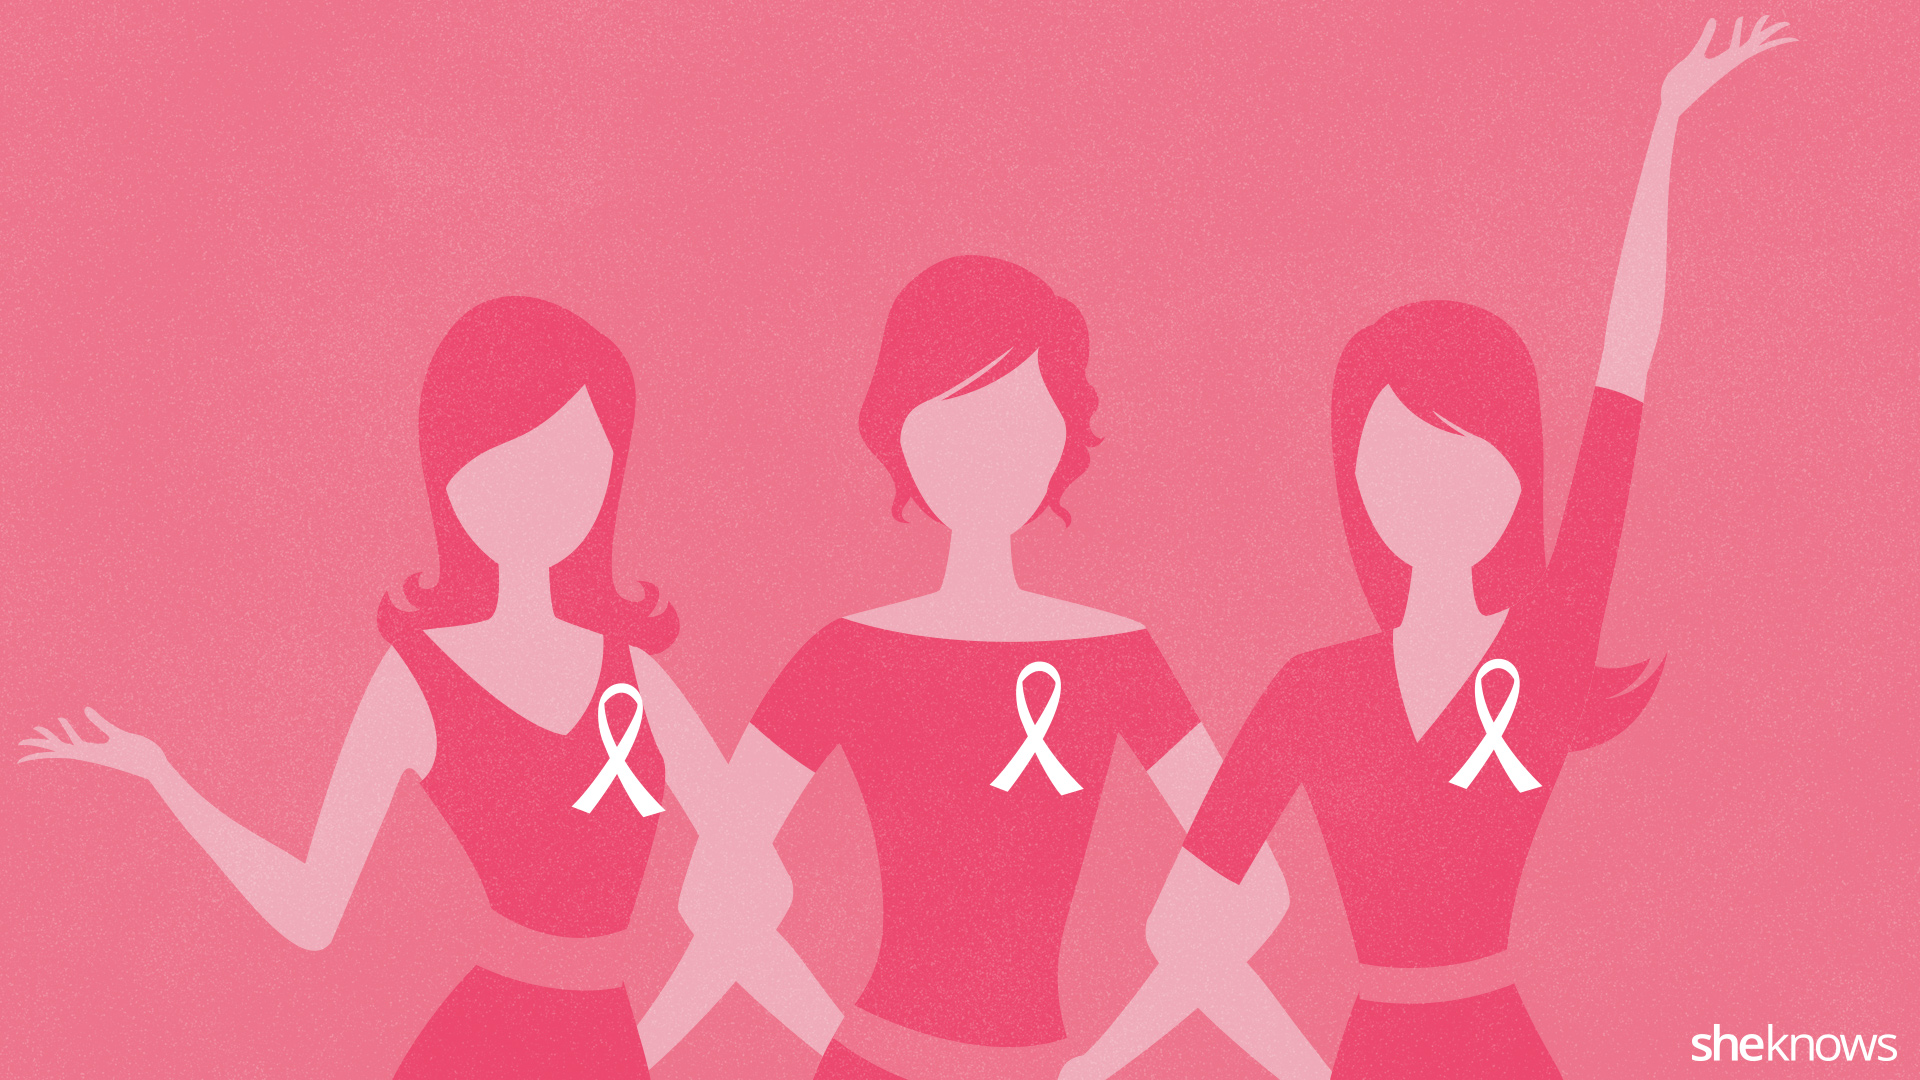 breast cancer awareness backgrounds - wallpapersafari, Powerpoint templates